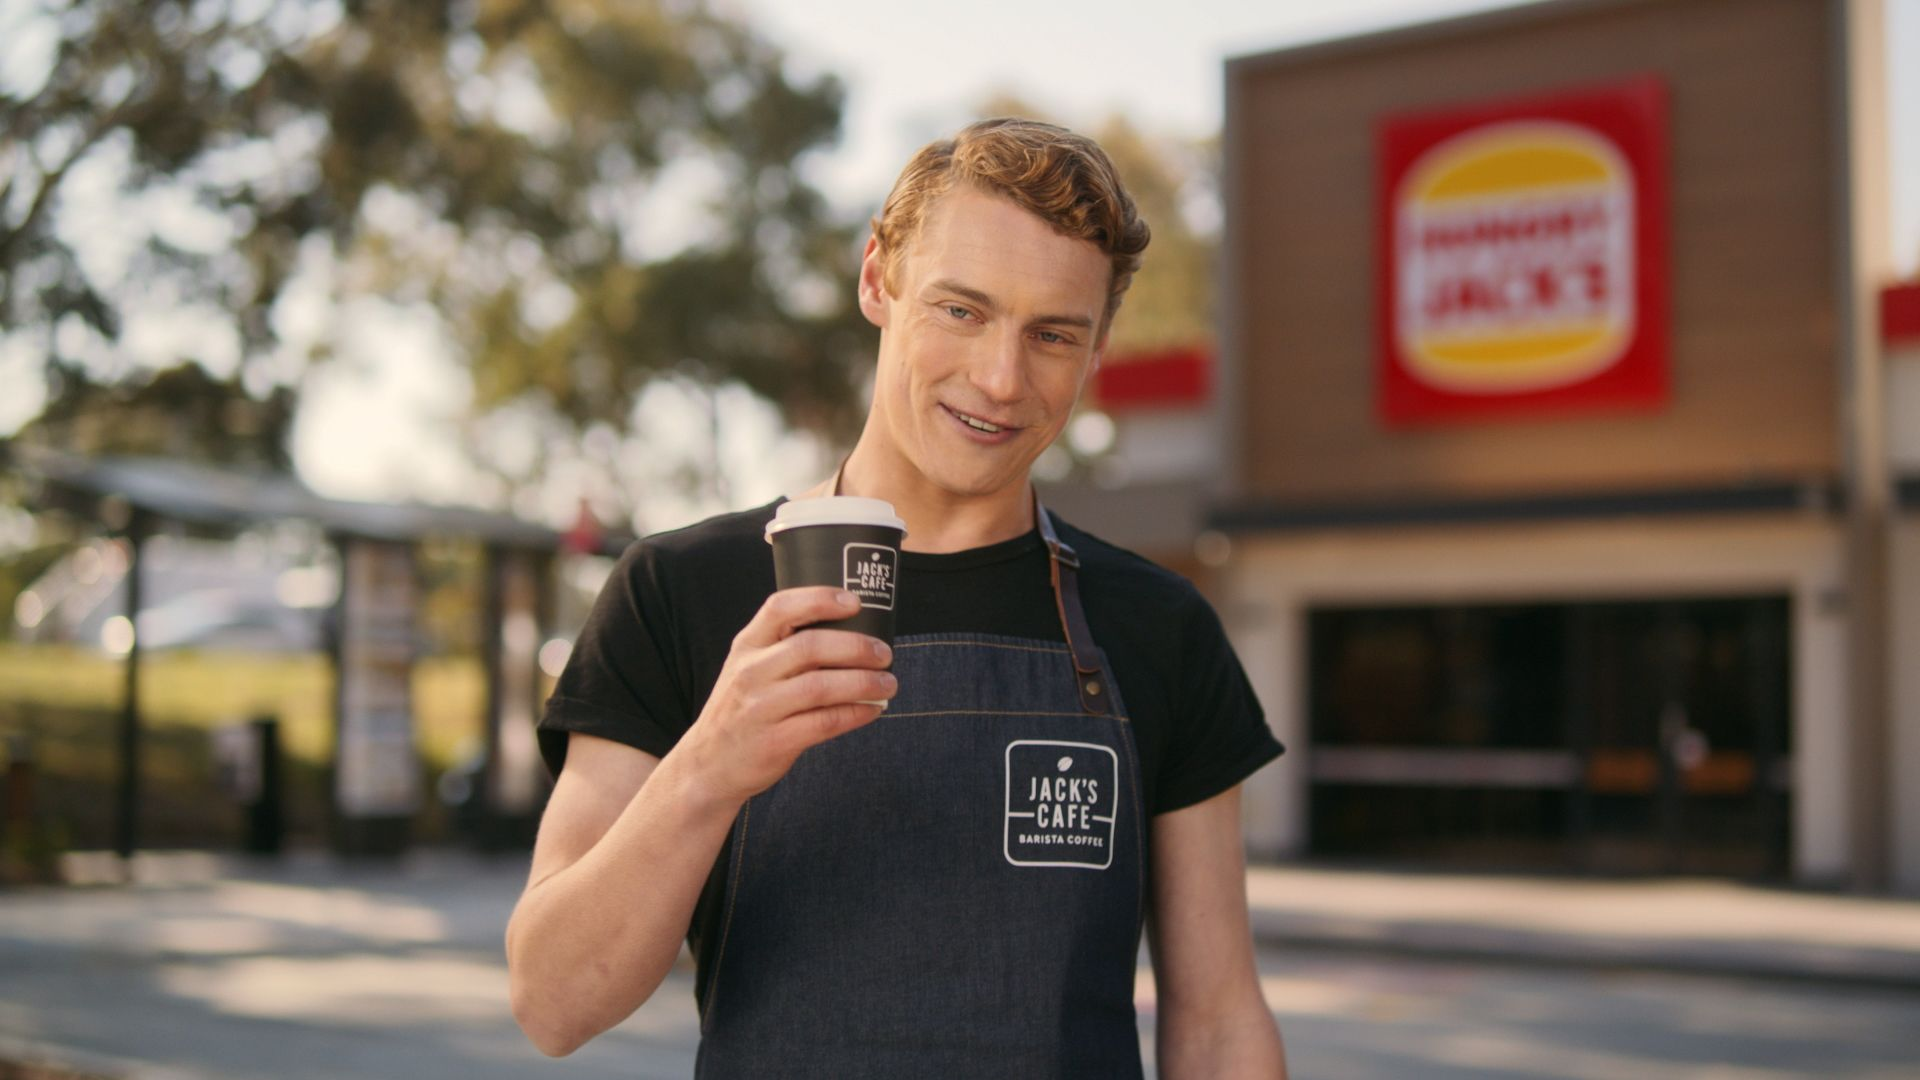 Hungry Jack's to rival McCafe with new Jack's Café concept | Inside Franchise Business